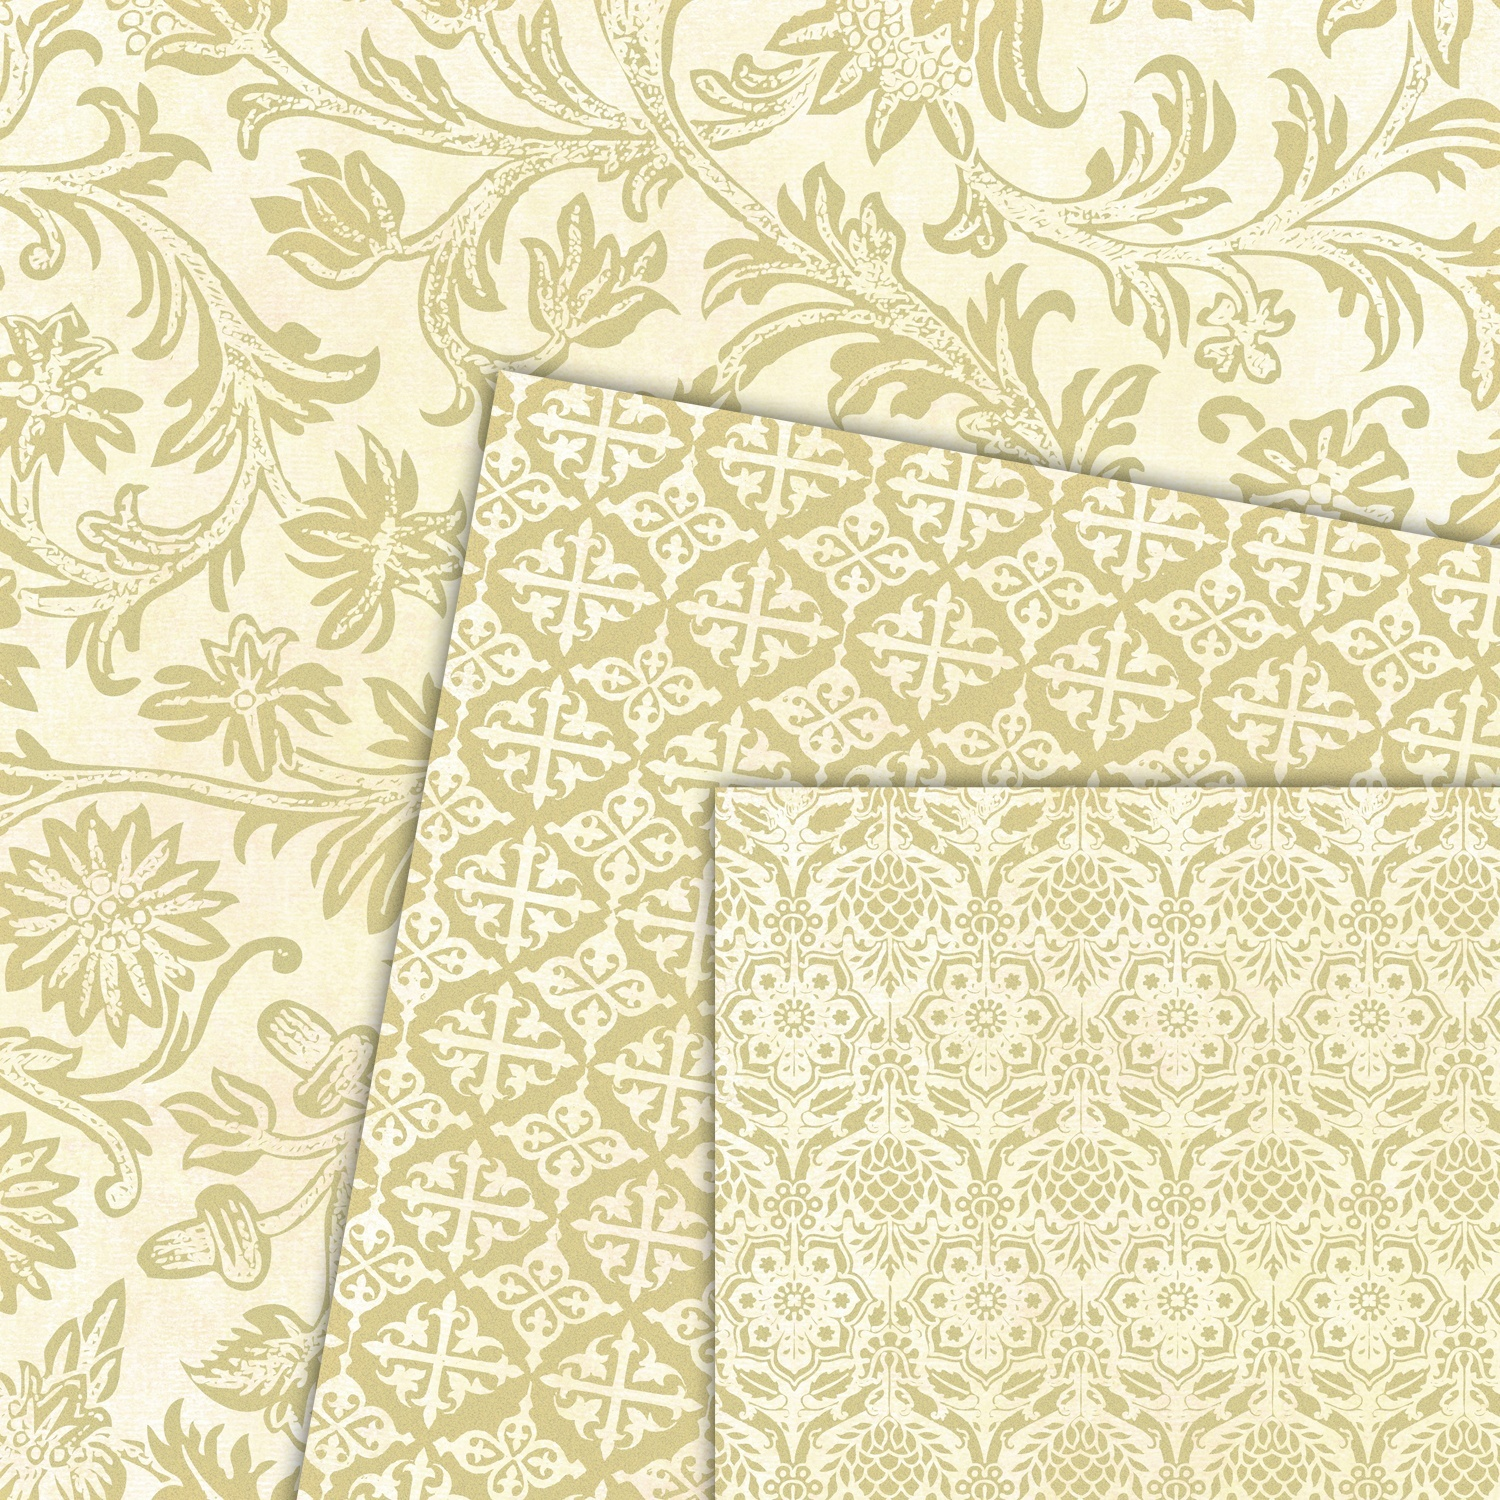 Gold Vintage Digital Scrapbook Paper Baer Design Studio